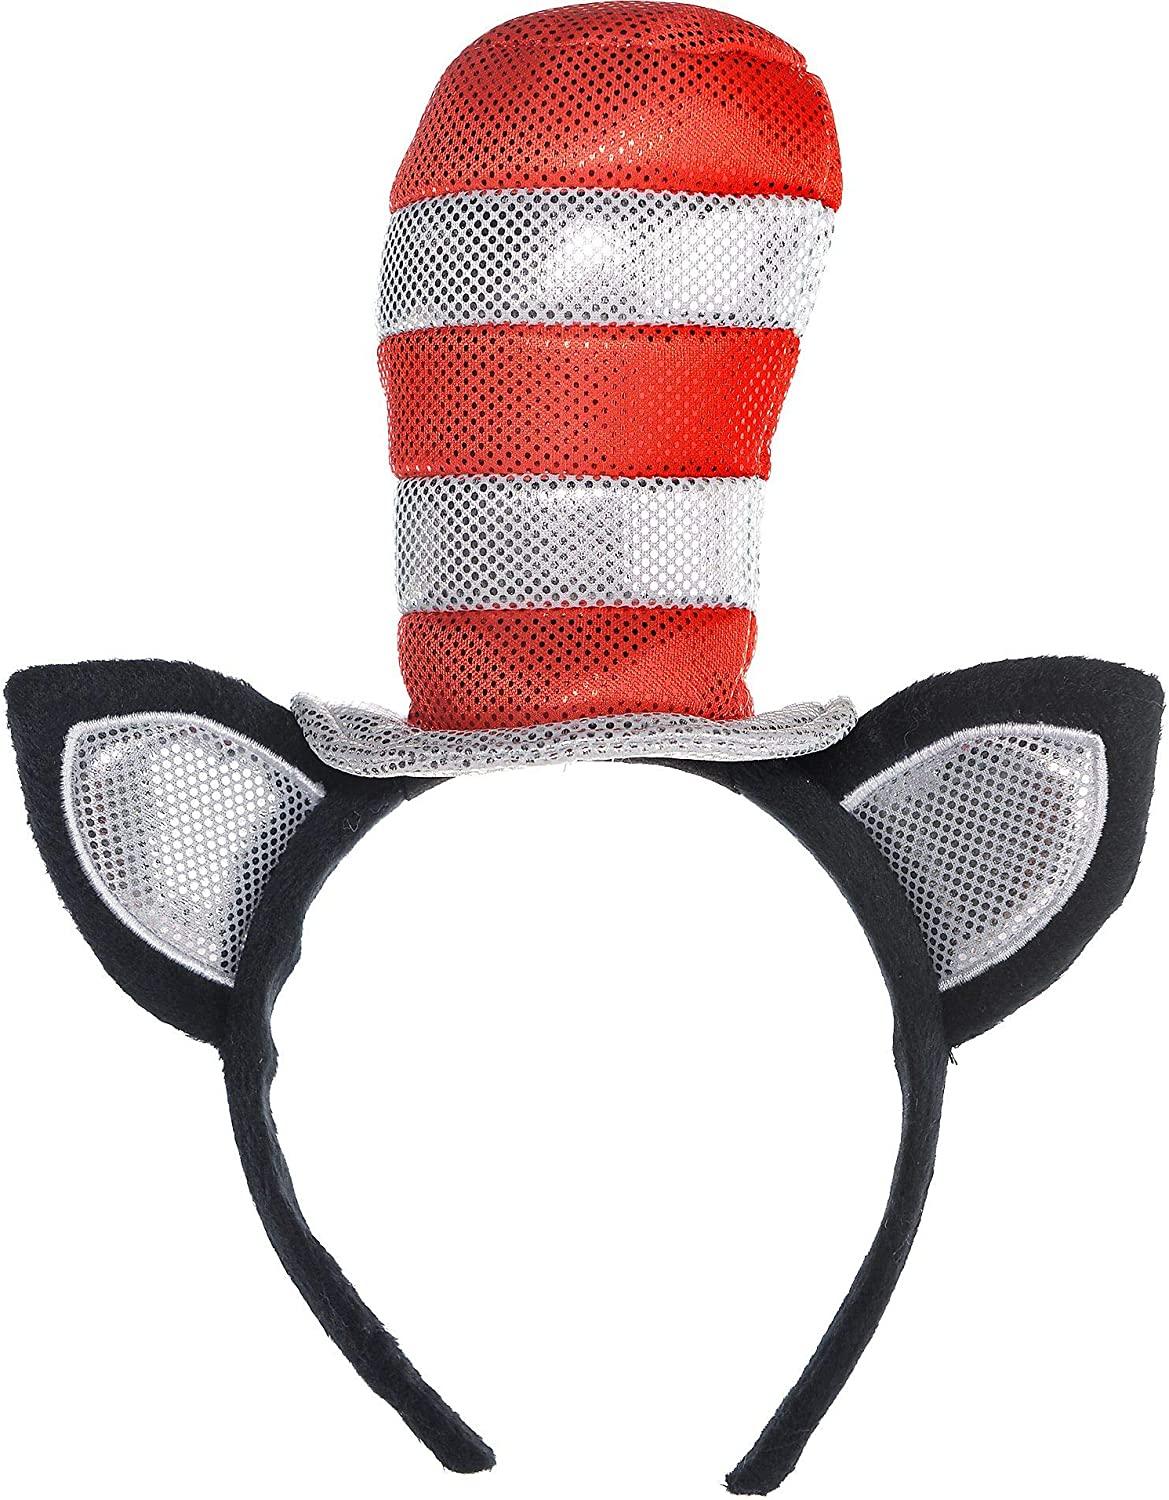 Costumes USA Dr  Seuss Cat in the Hat Cat Ears Headband for Kids  Halloween Costume Accessories  One Size